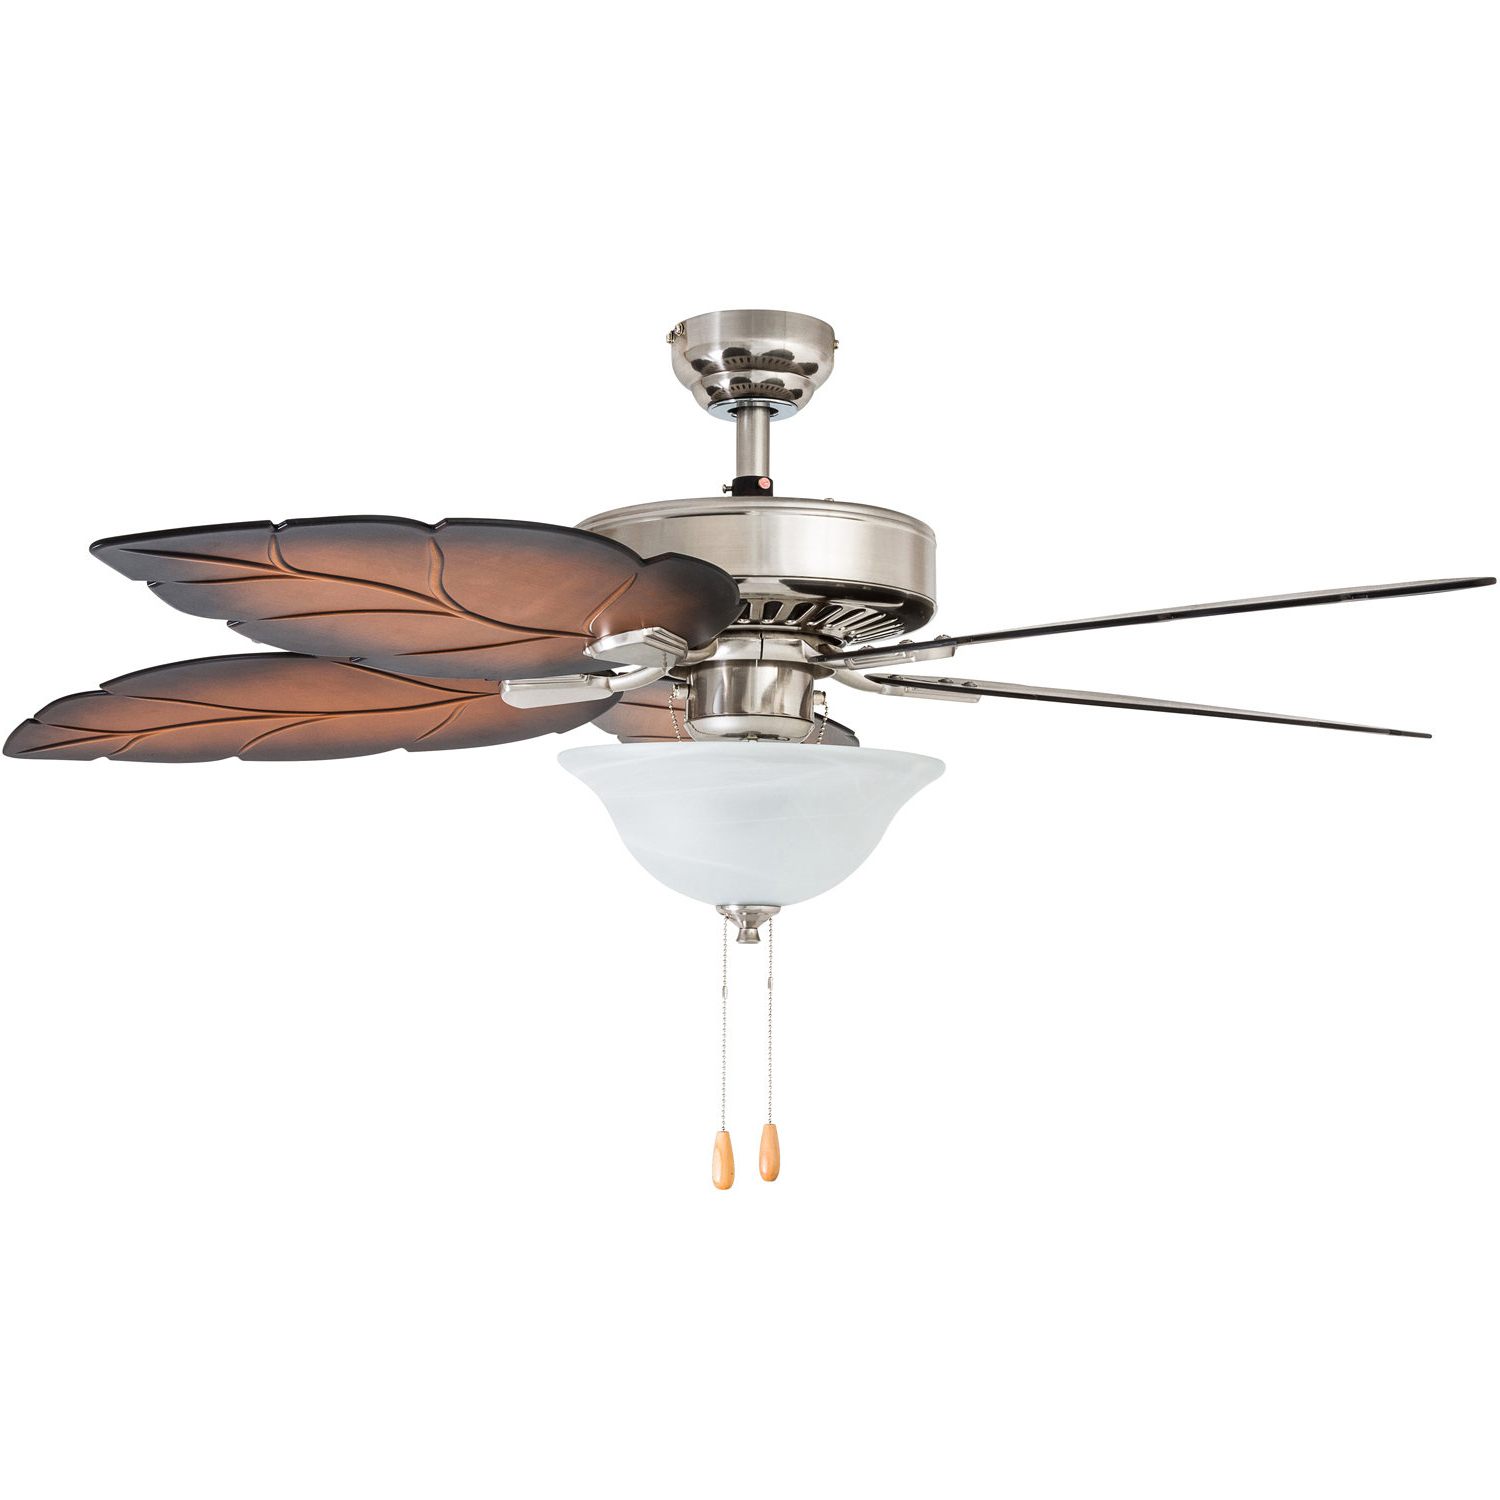 "Eliora 5 Blade Ceiling Fans Within 2020 52"" Monterry 5 Blade Led Ceiling Fan (Gallery 16 of 20)"